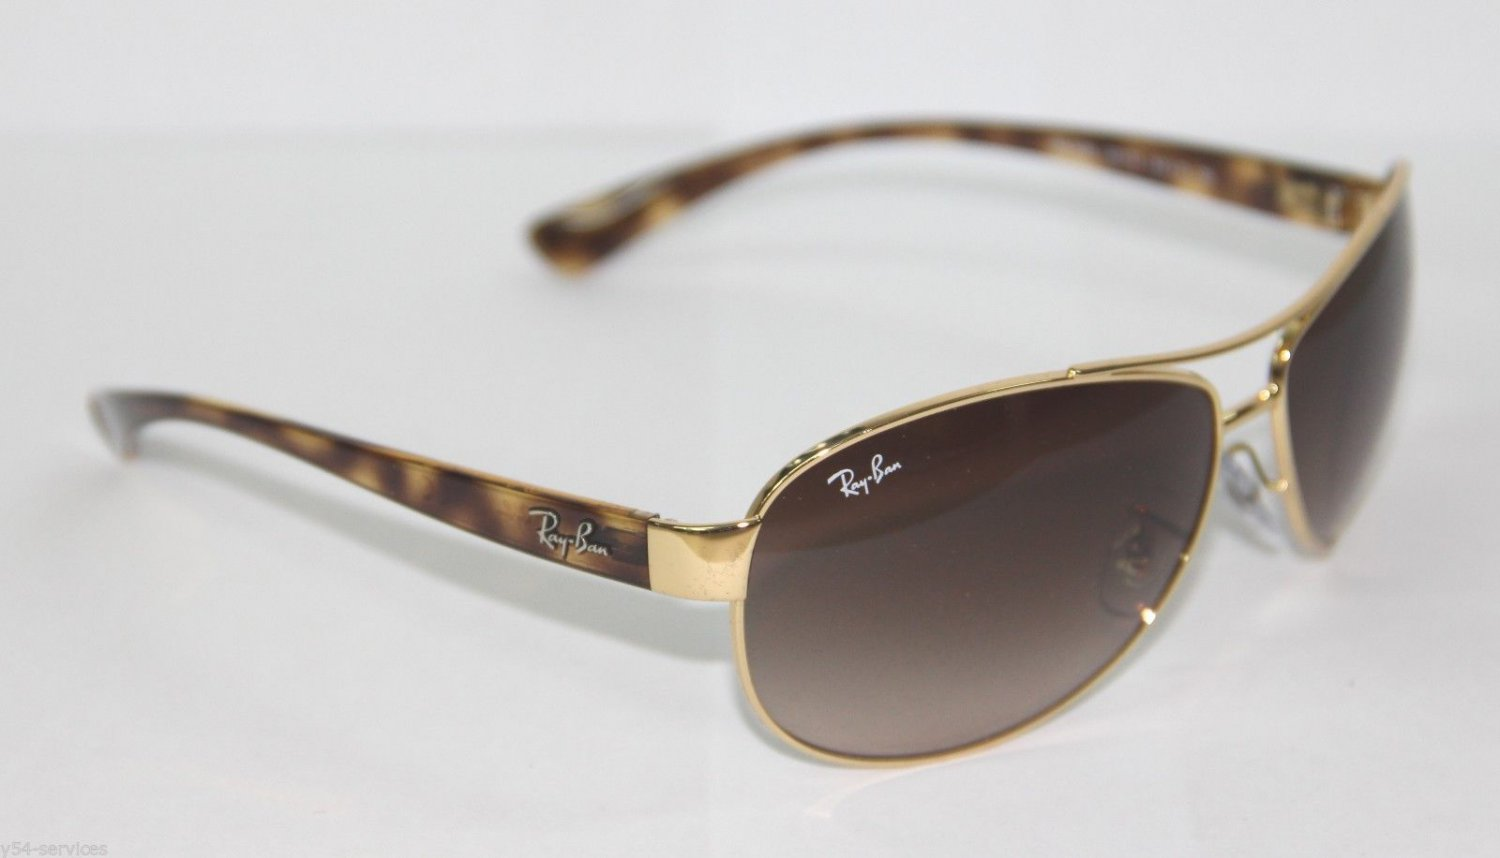 Ray-Ban Sunglasses AVIATOR 3386 001/13 63 GOLD TORTOISE BROWN GRADIENT Original